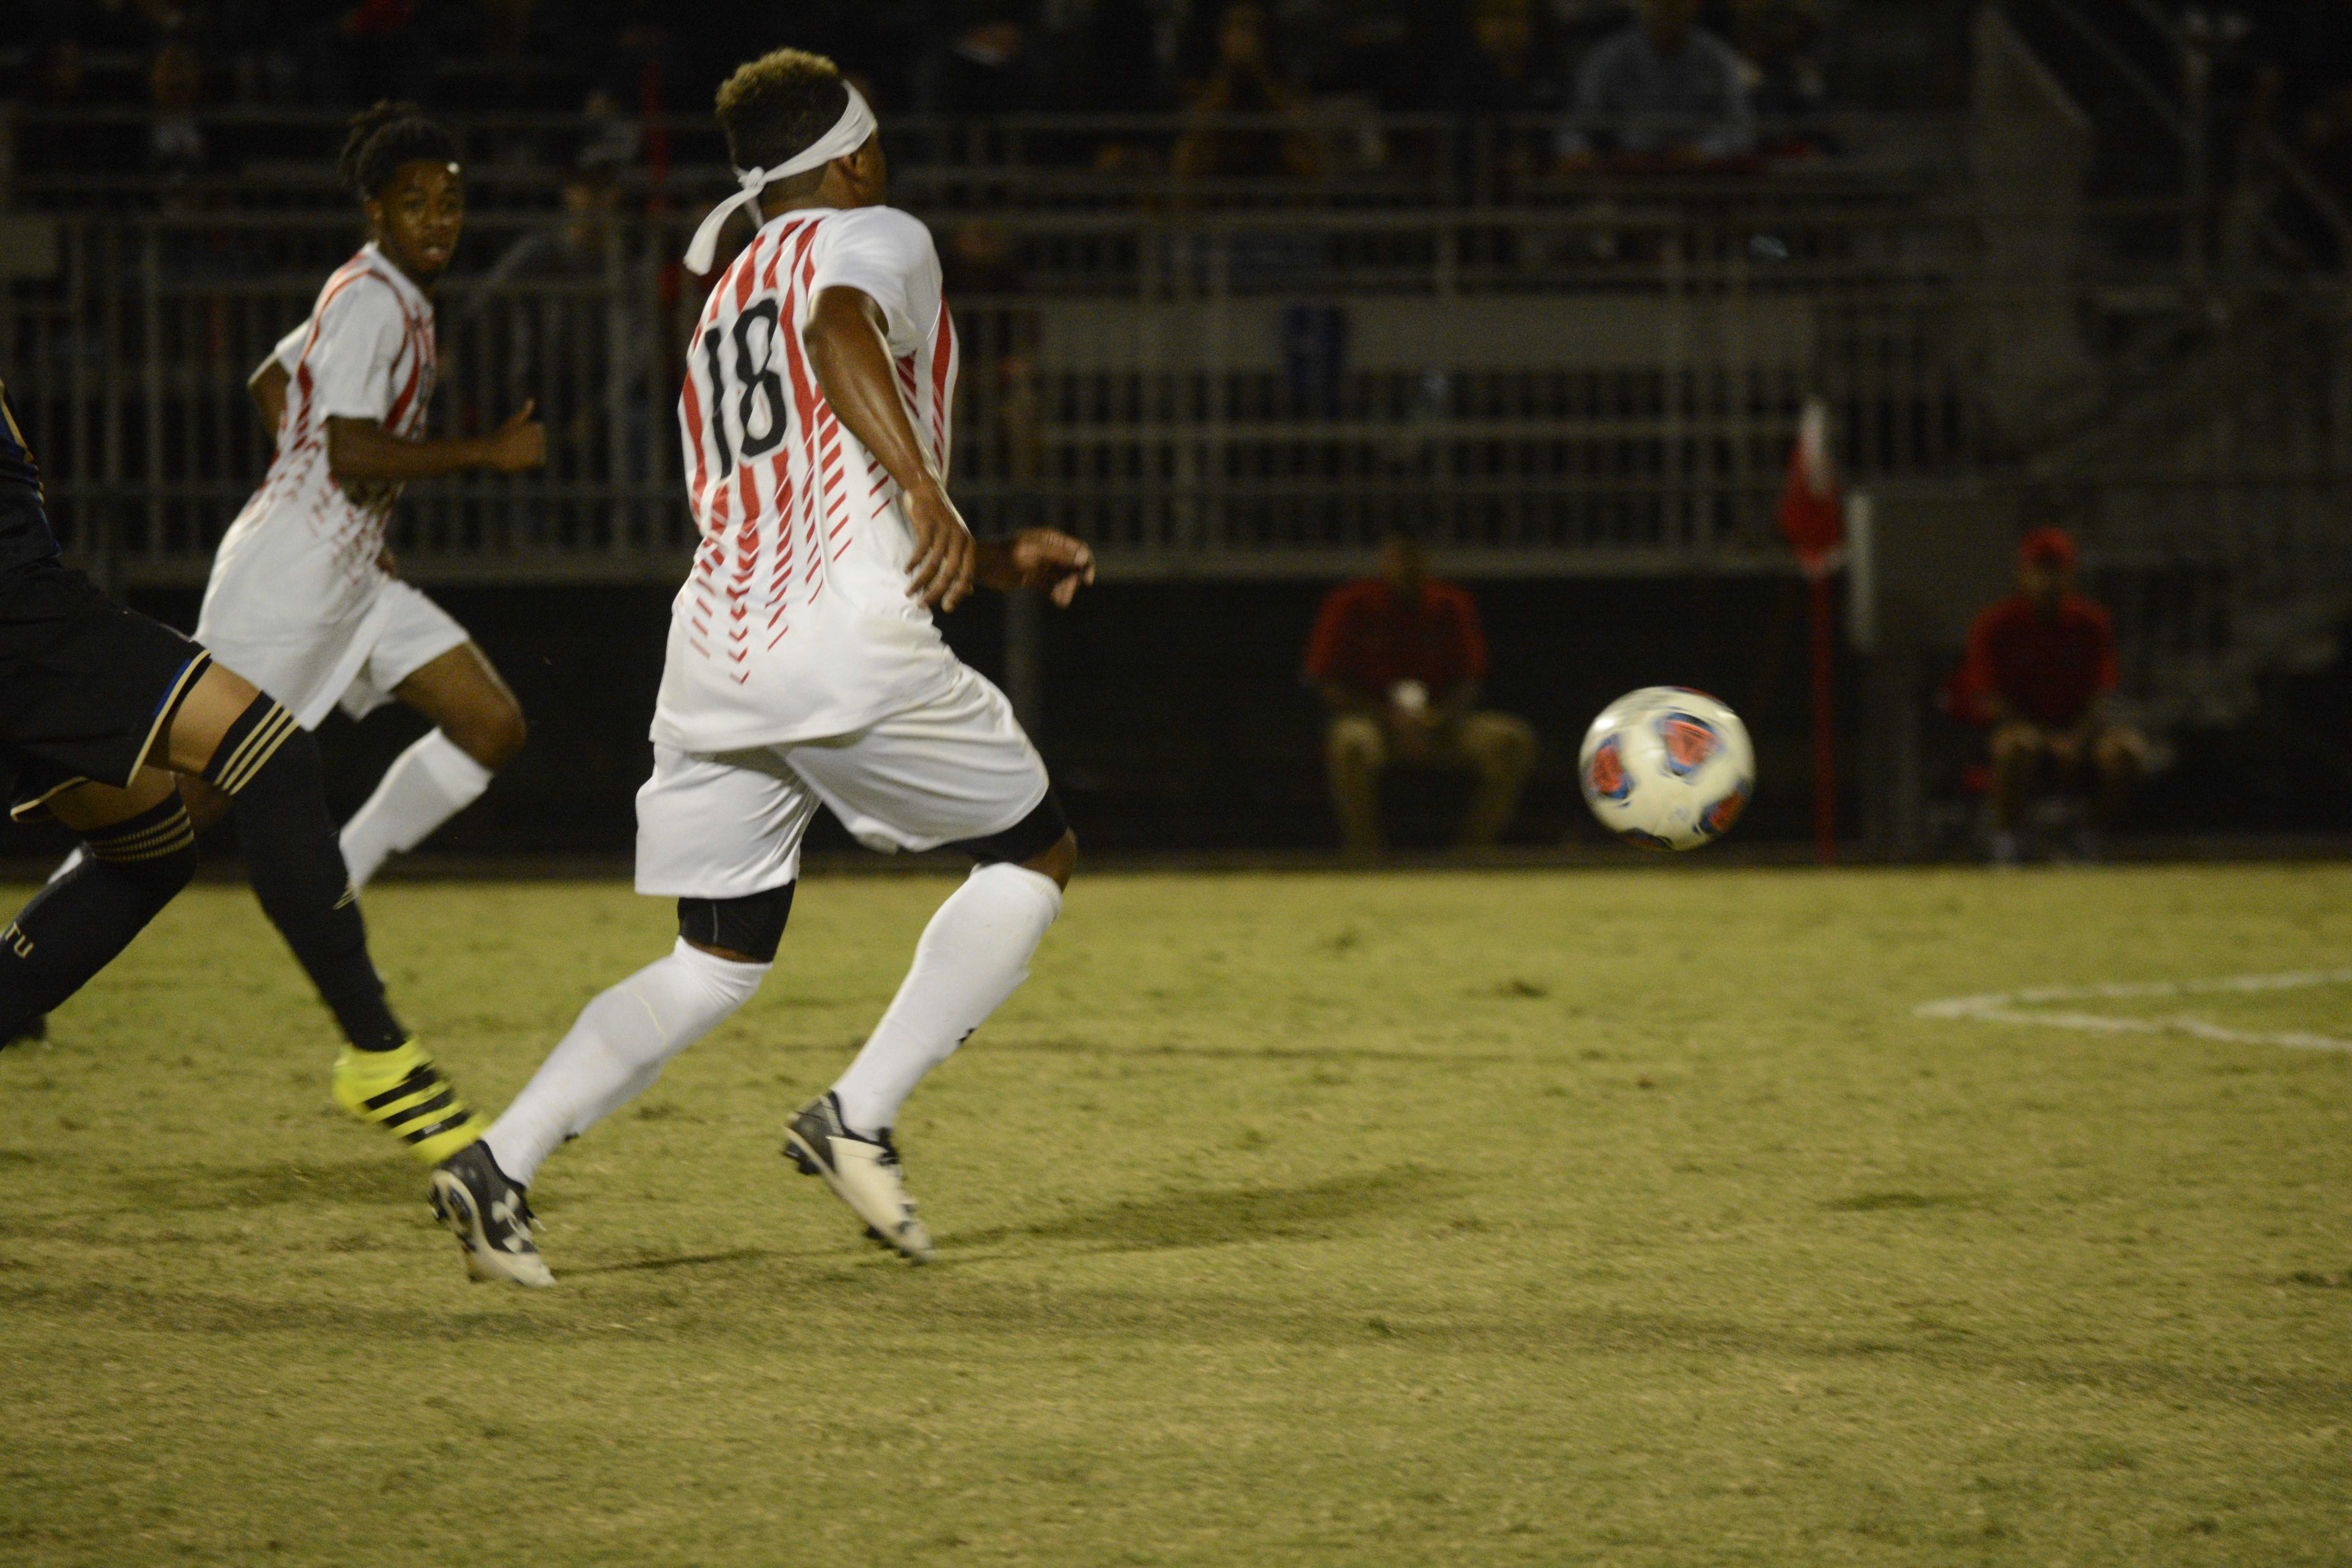 CSUN soccer players chase down the ball